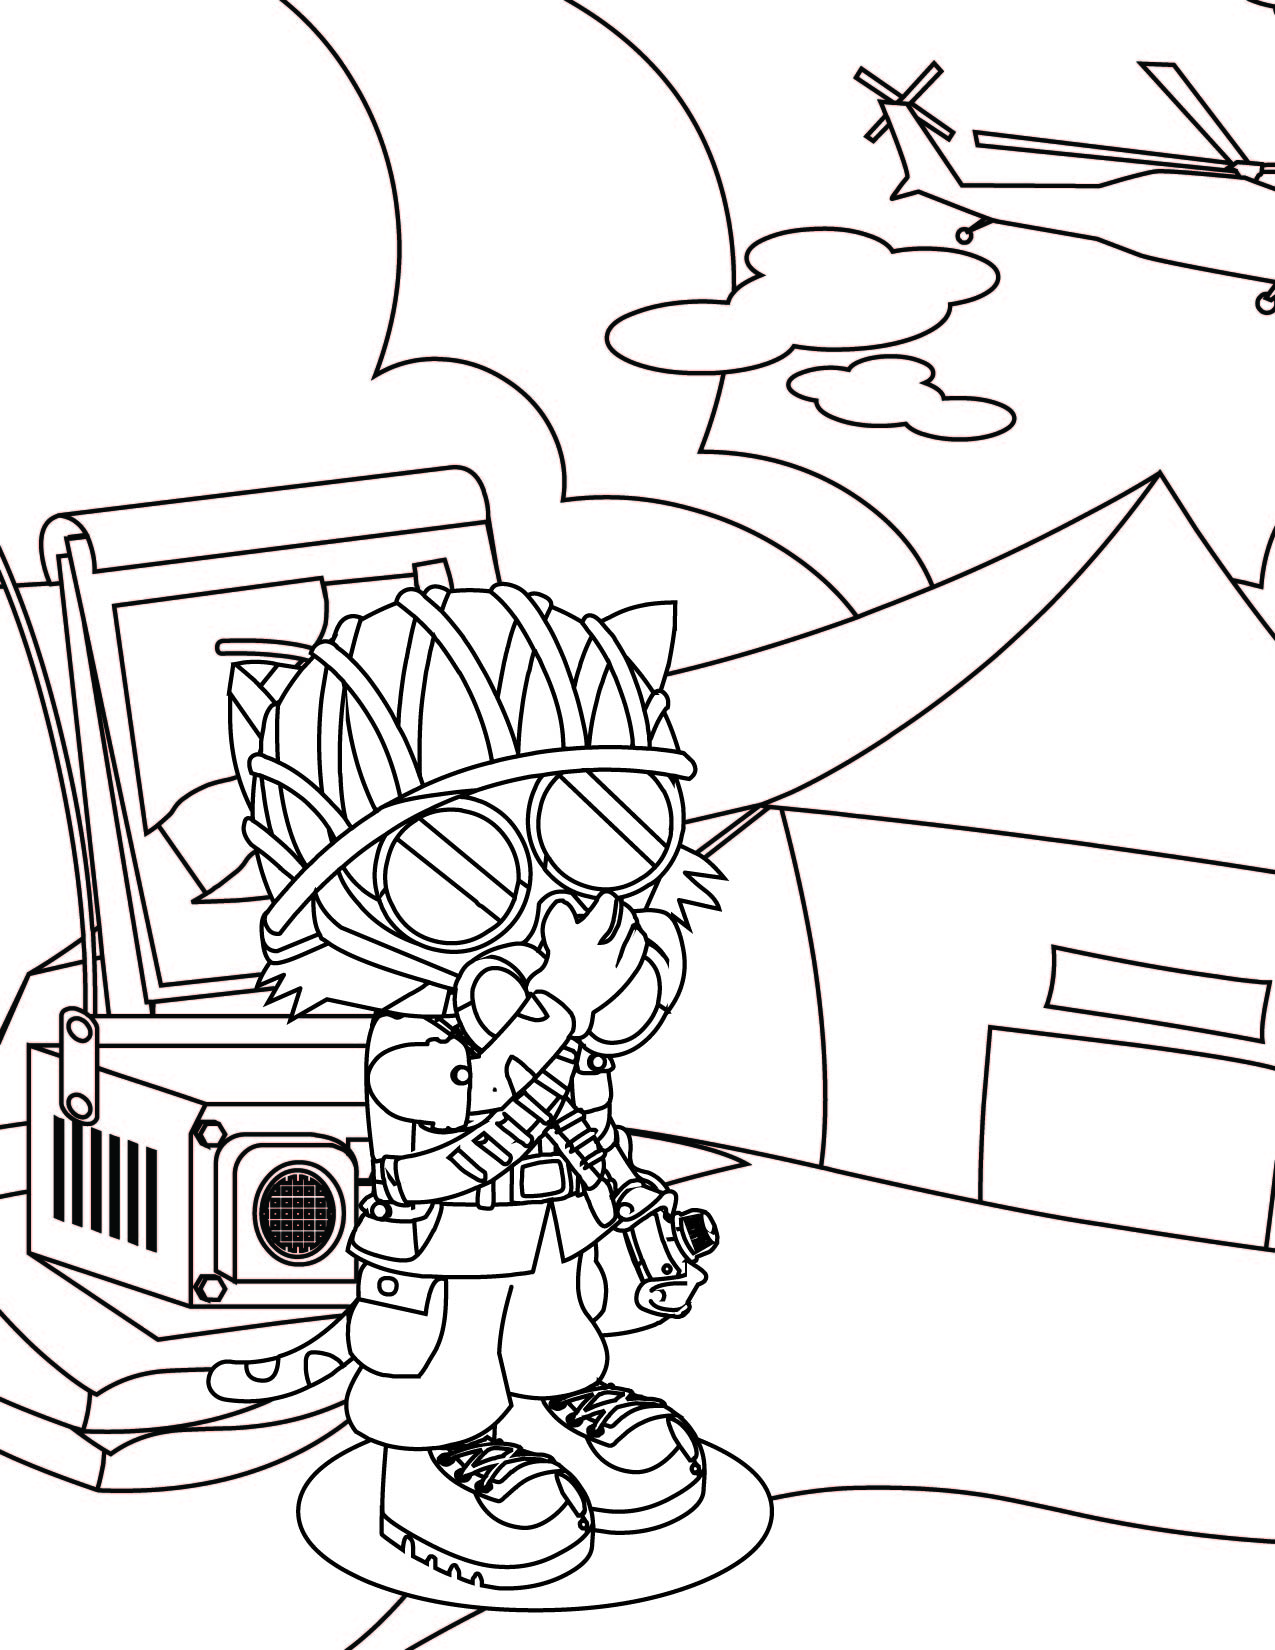 100 army color pages coloring pages boys free printable